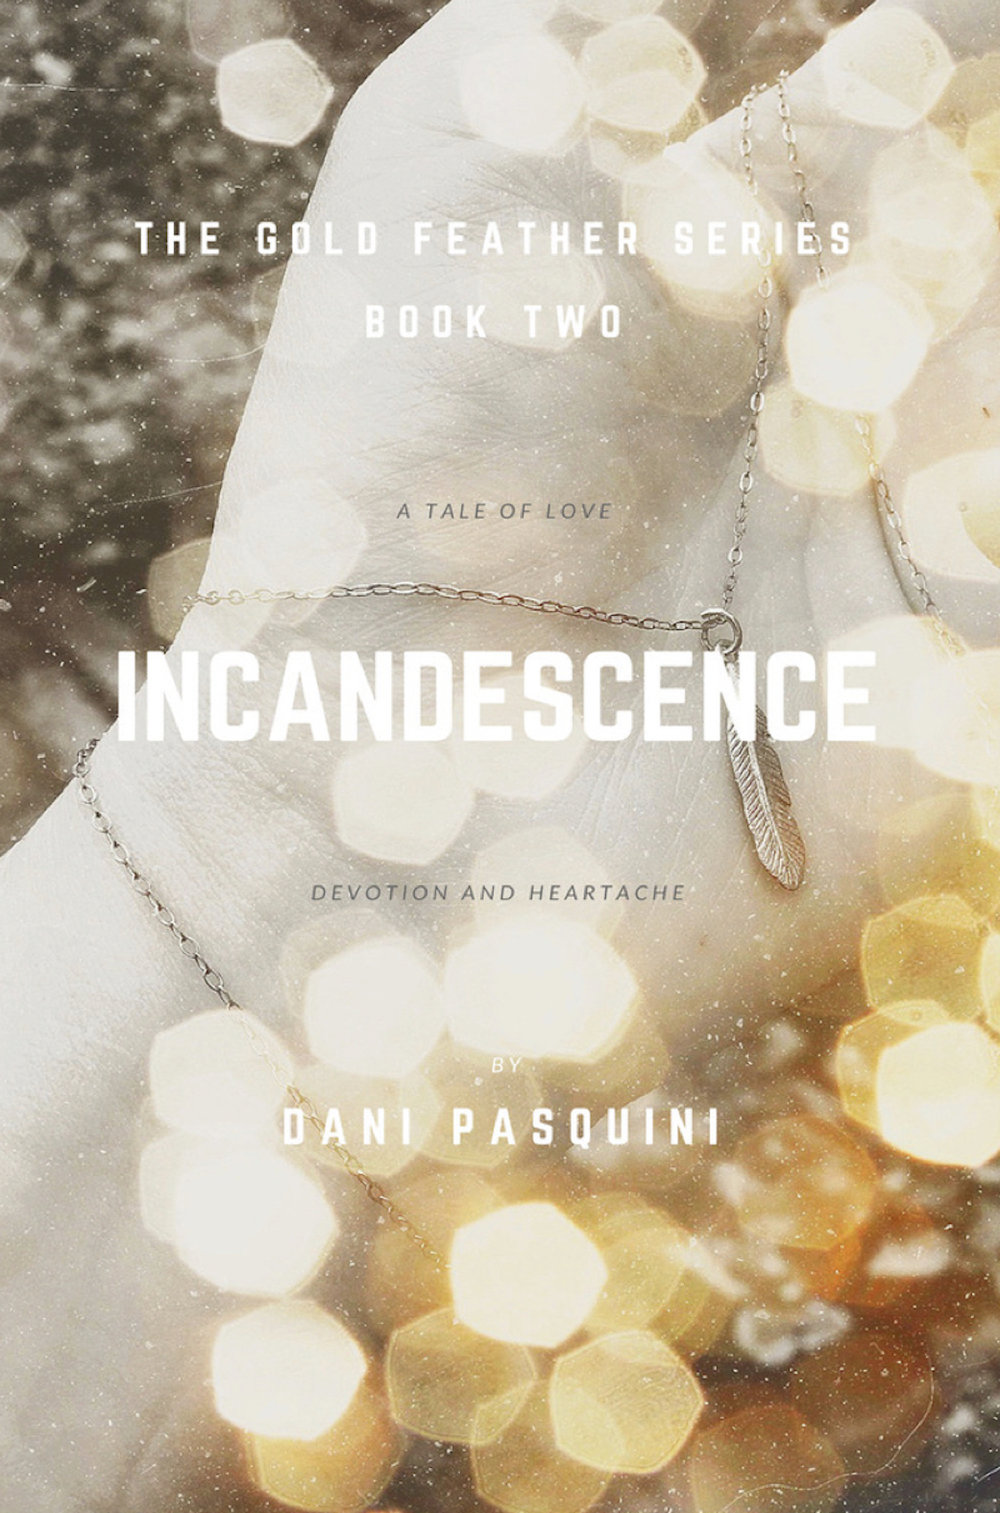 Incandescence - Lily and Jonas' story continues in book 2.It's been two years since the bloodshed in the desert and Peter's desertion. Despite the passage of time and the new peaceful life that Lily has discovered with the other Duals she continues to feel the debilitating absence of Peter everywhere. That is until a dark figure appears on their doorstep. After saving his life, the team learns that they must flee their home or risk capture by The Agency. New and old loves emerge along with new threats that heartbreakingly alters some of the Duals forever. Will they be able to elude their captors or are they all fated to remain the science experiments they were created to be.